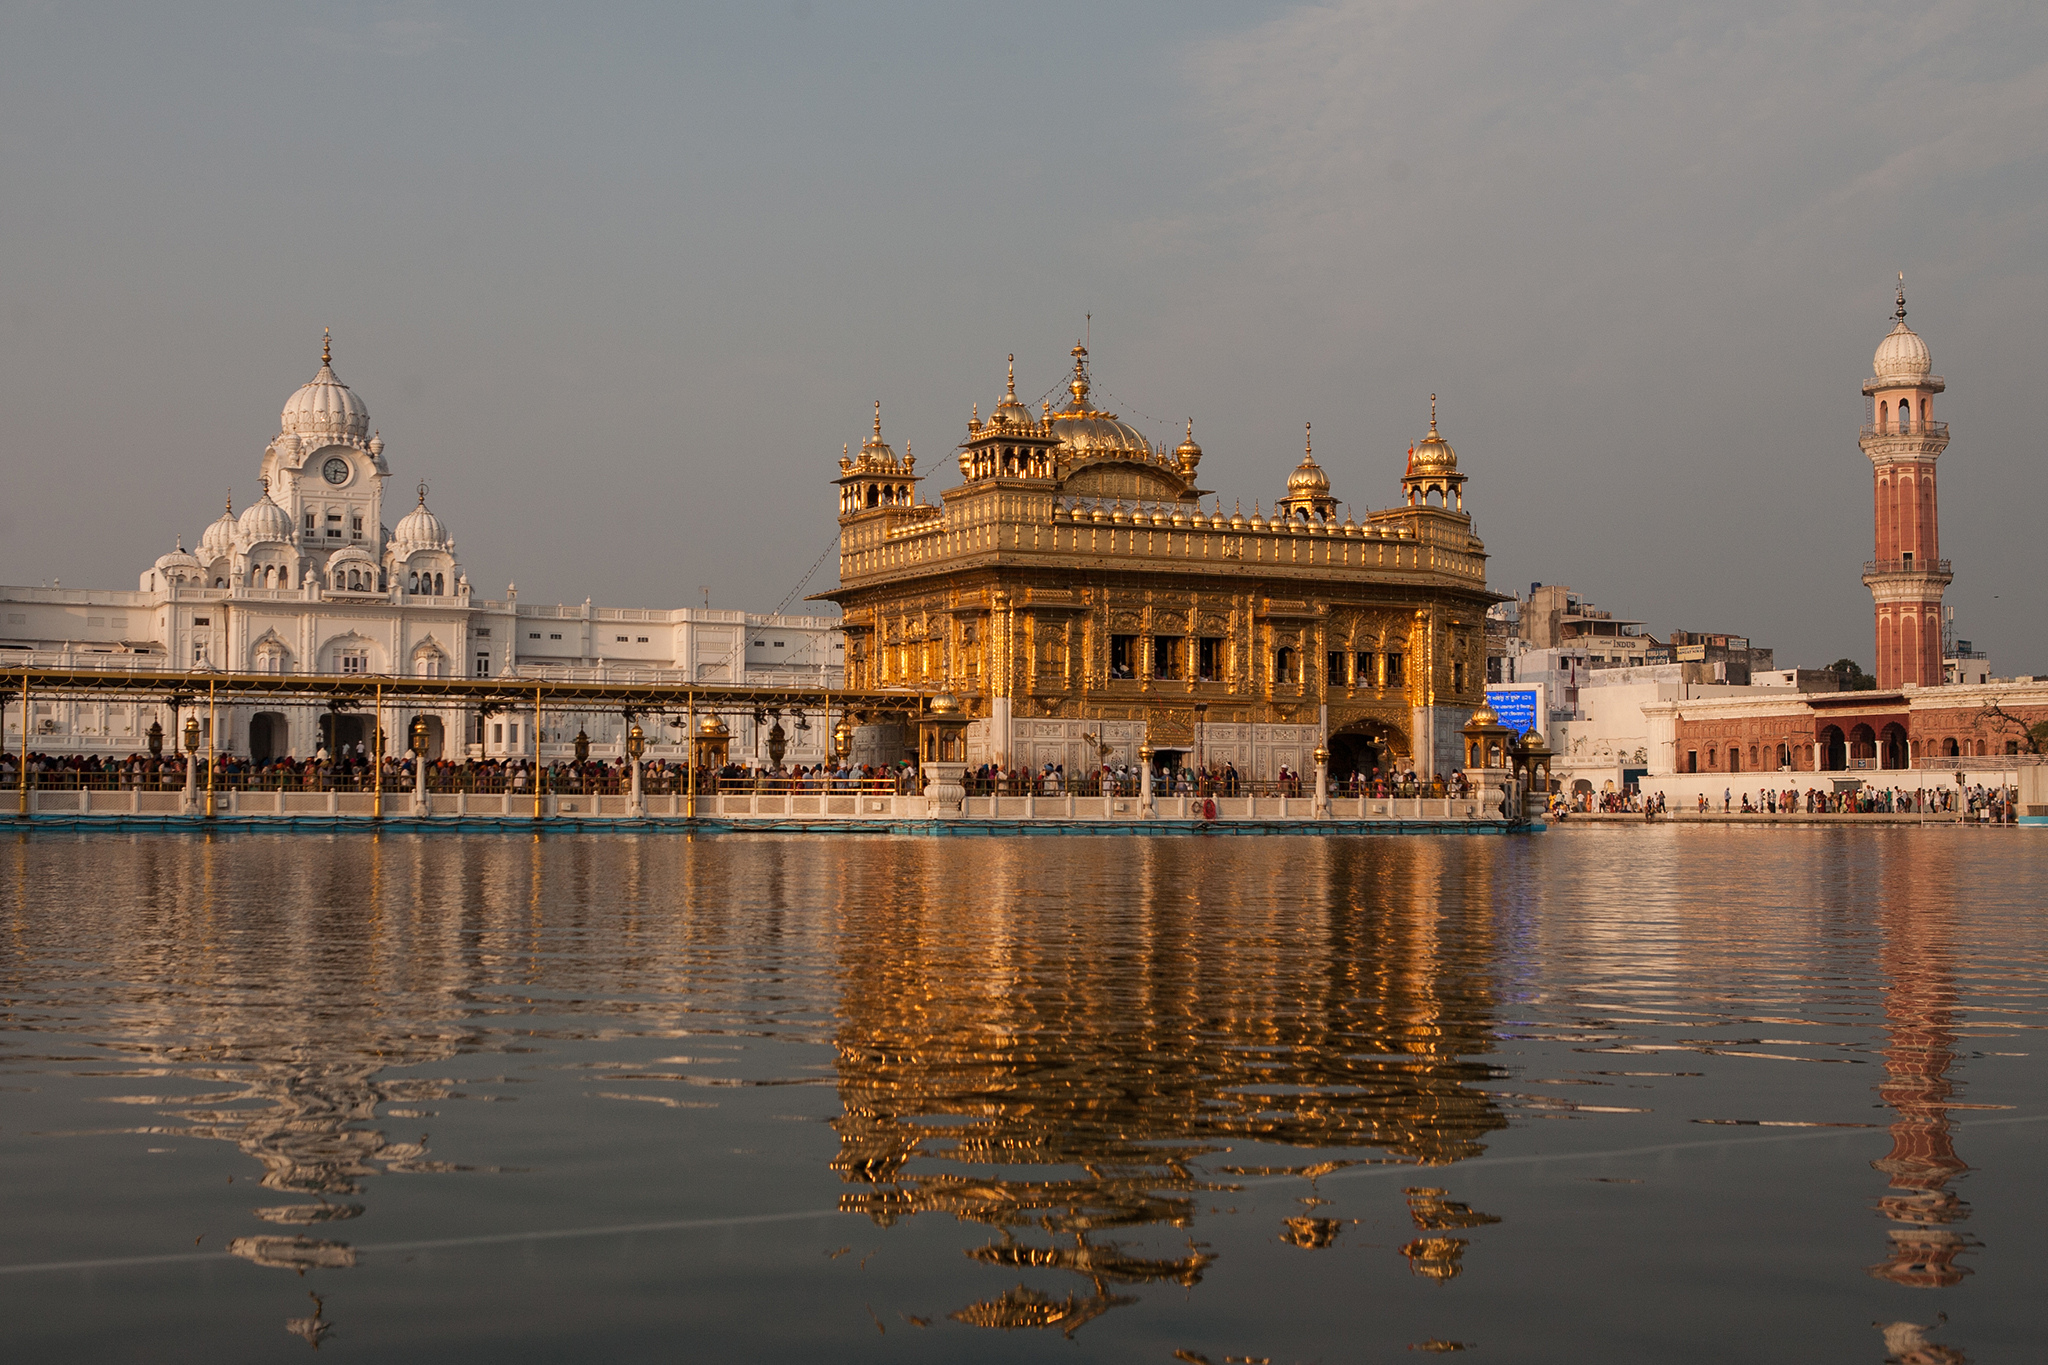 Temple India Sikh Golden